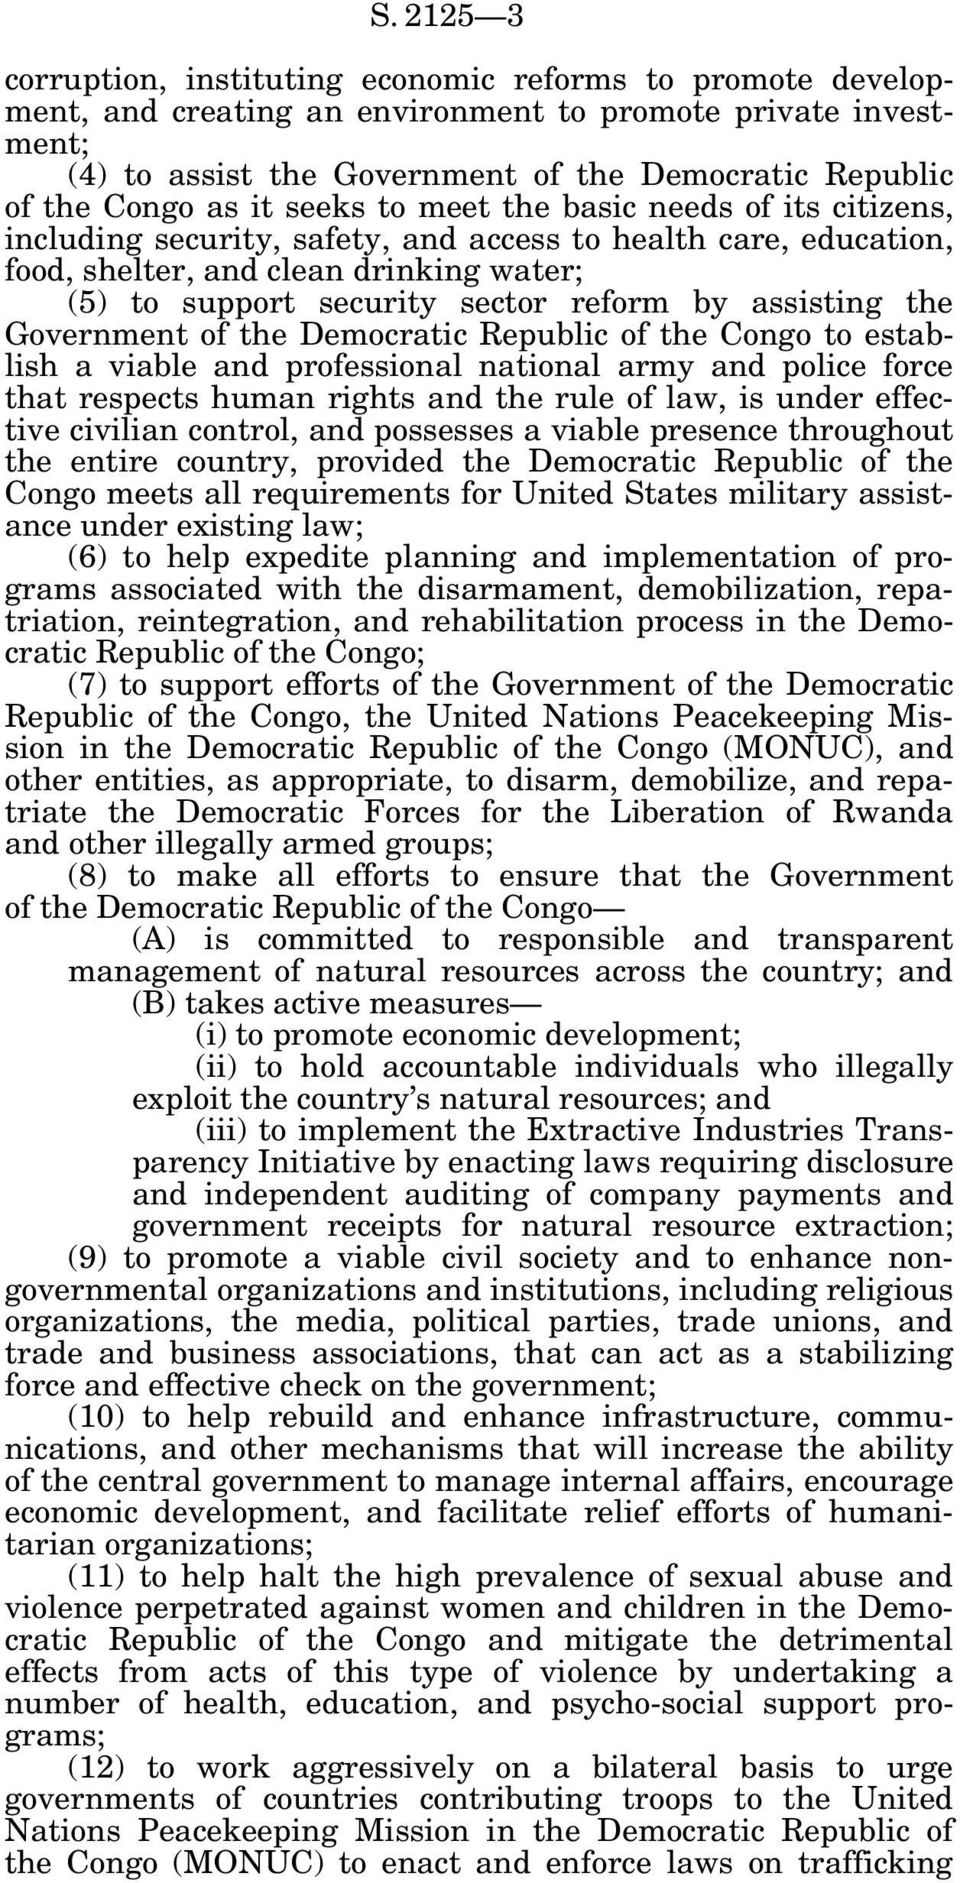 reform by assisting the Government of the Democratic Republic of the Congo to establish a viable and professional national army and police force that respects human rights and the rule of law, is